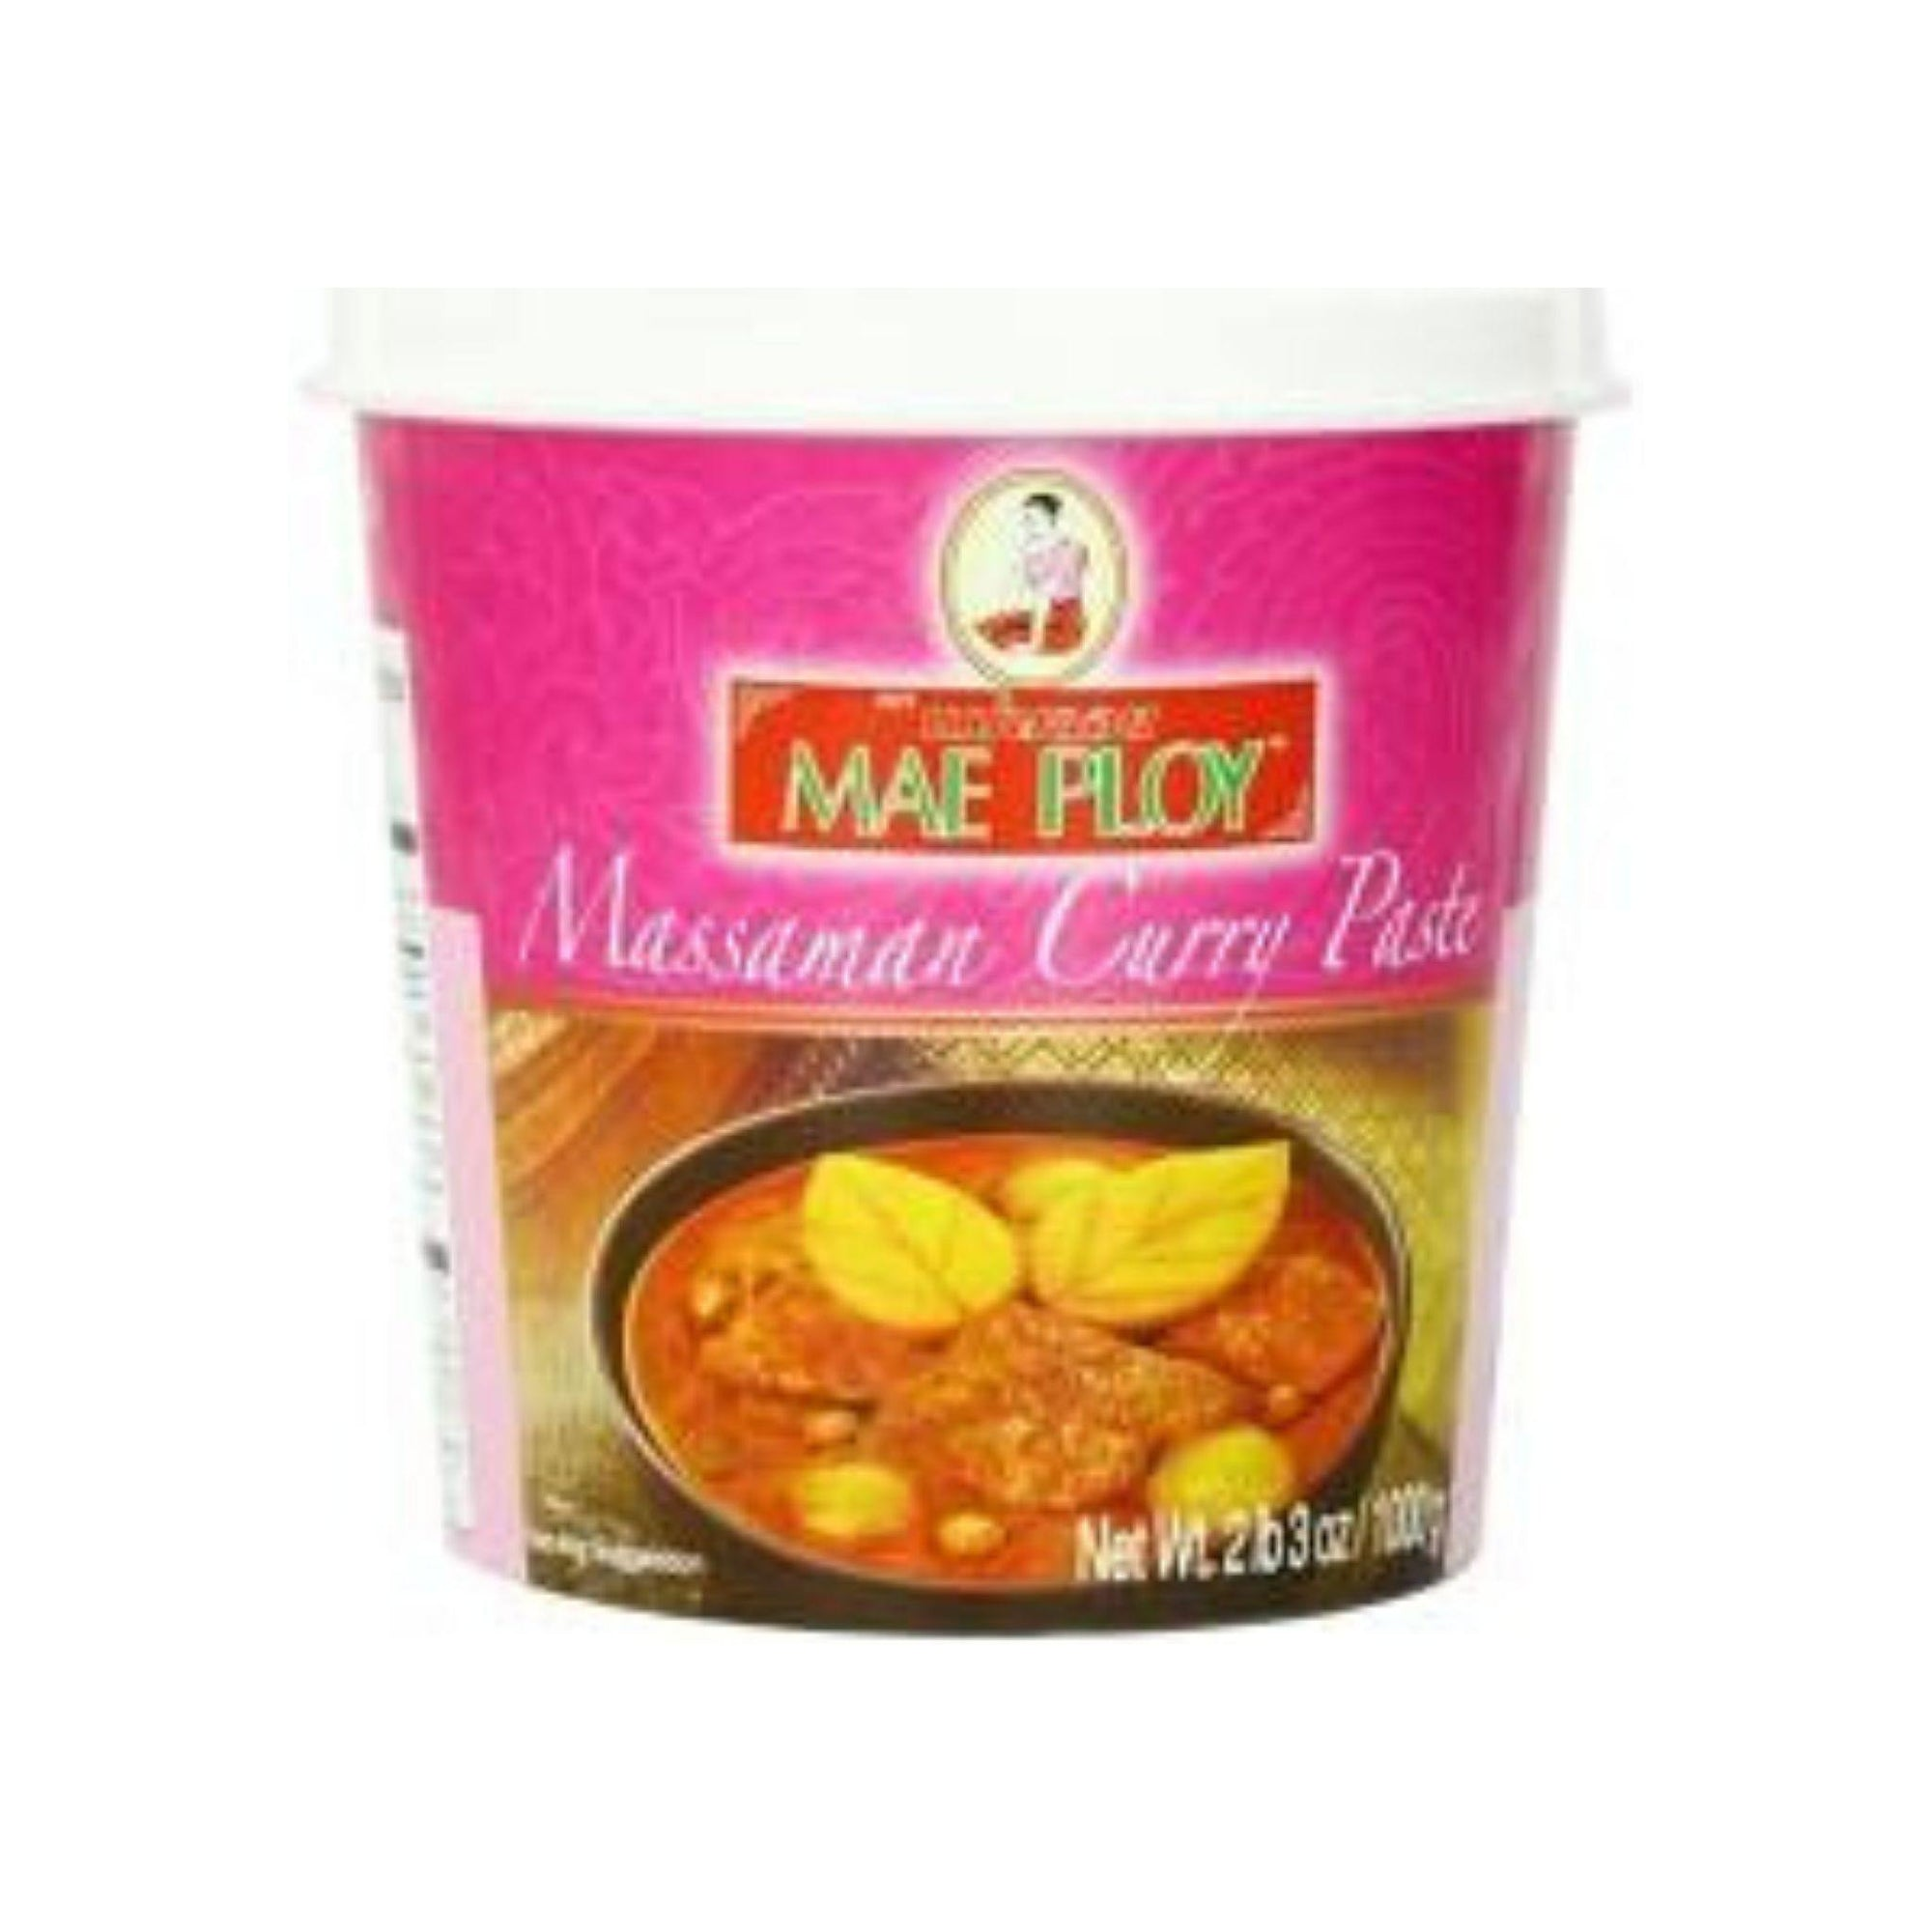 Mae Ploy Massaman Curry Paste 1KG - Asian Harvest